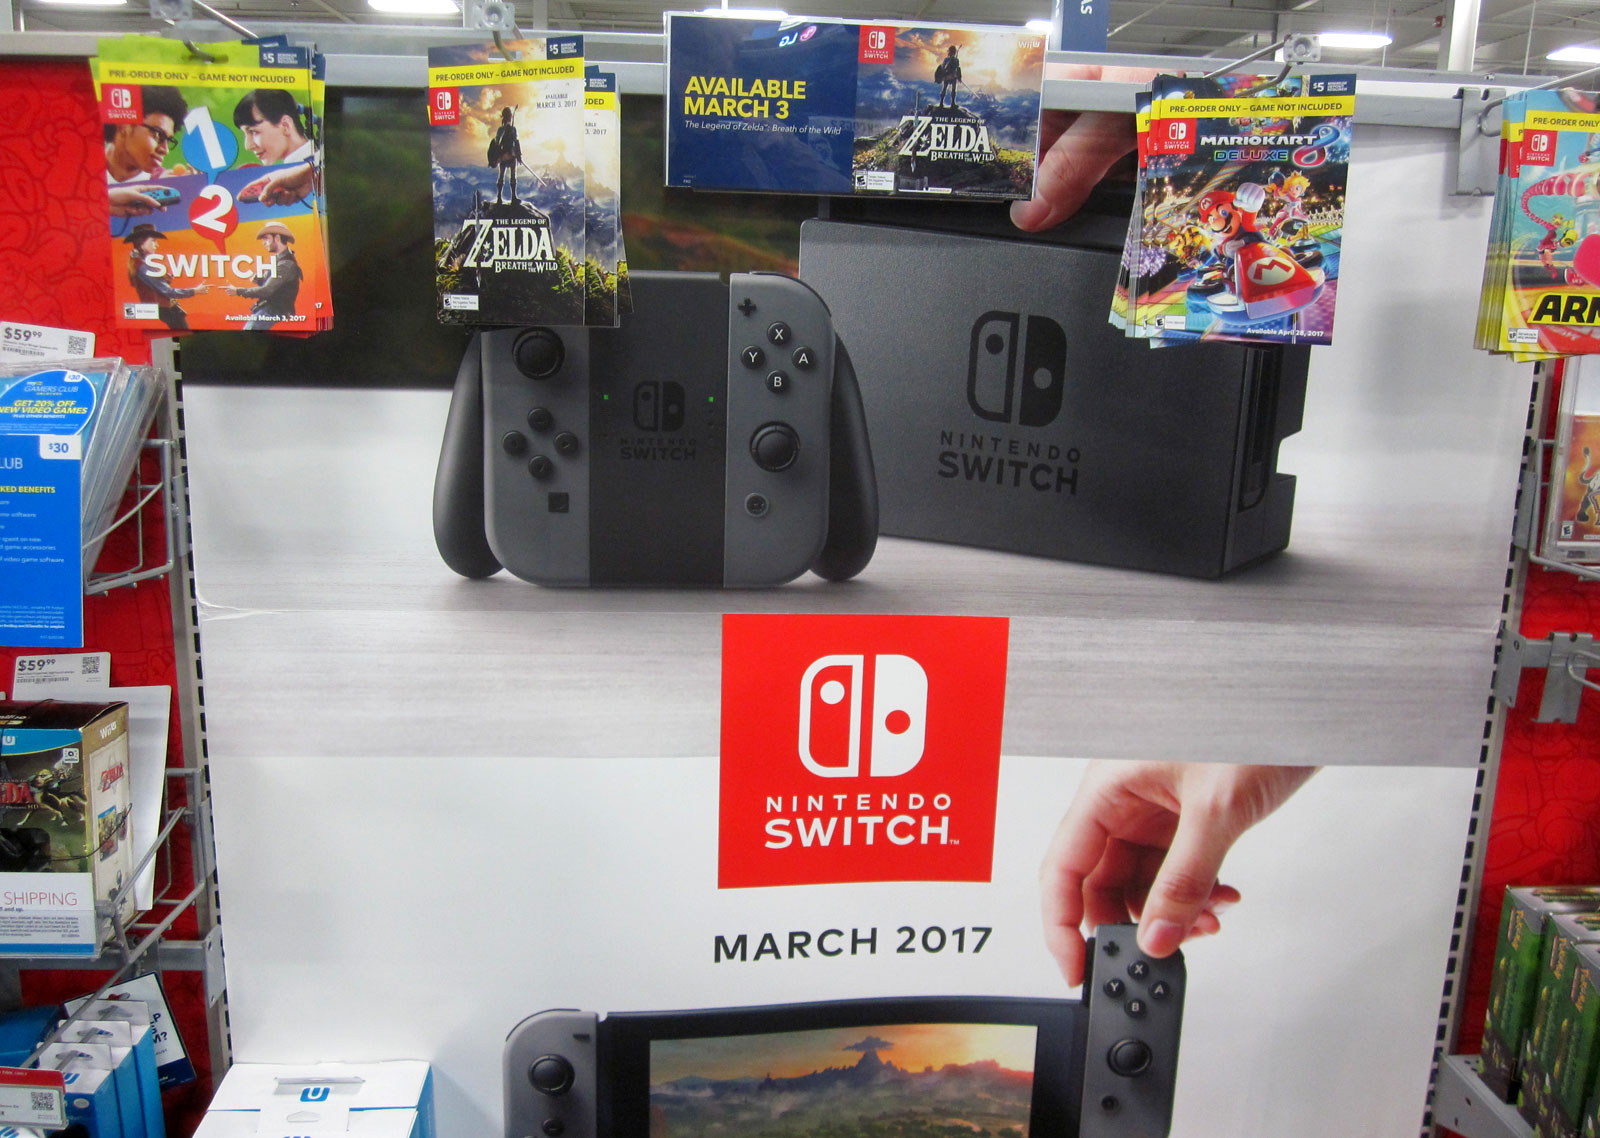 Preorder games for Switch at Best Buy